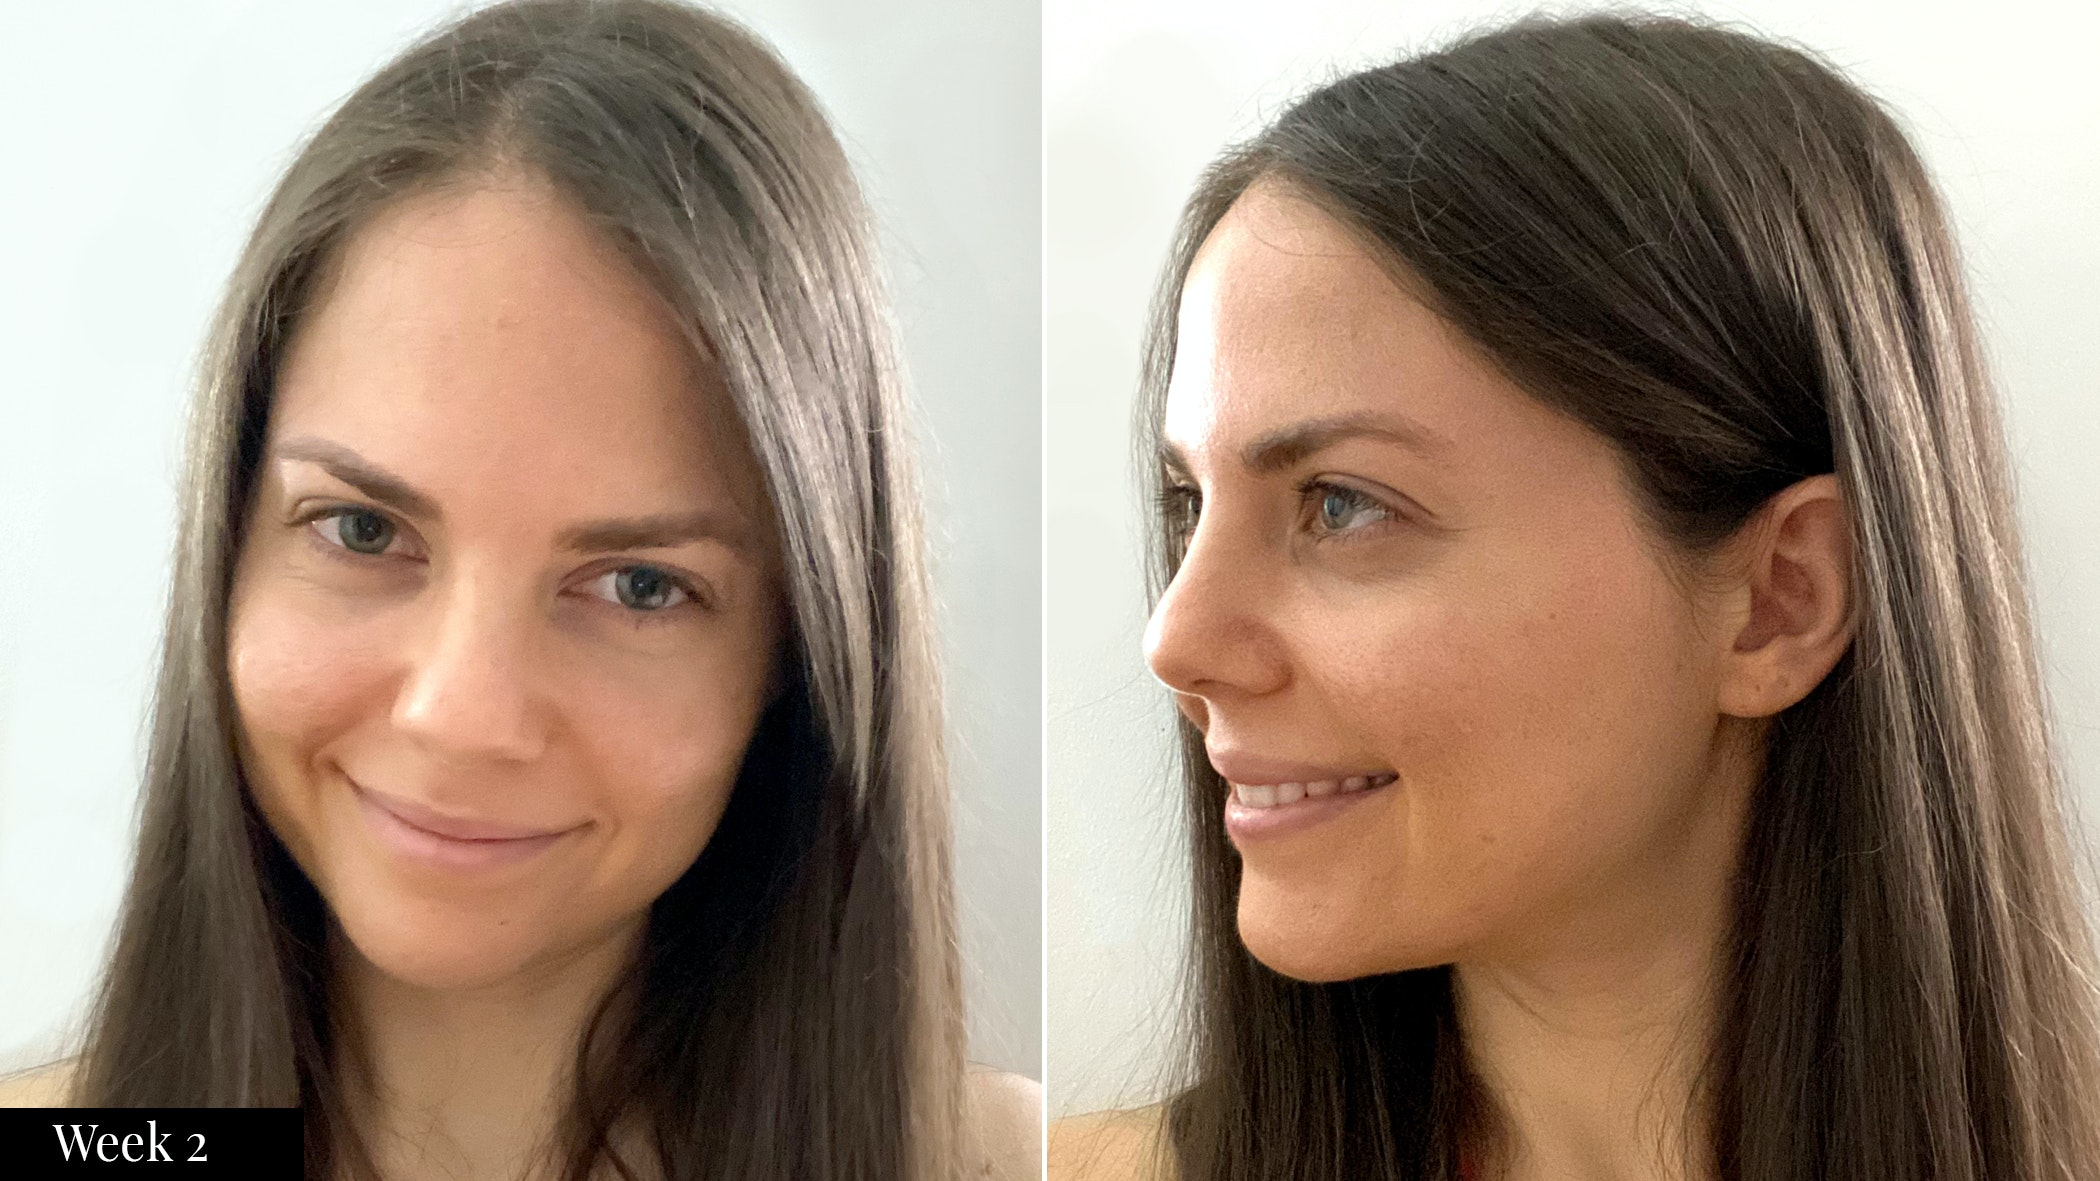 SkinMedica skincare results  after two weeks